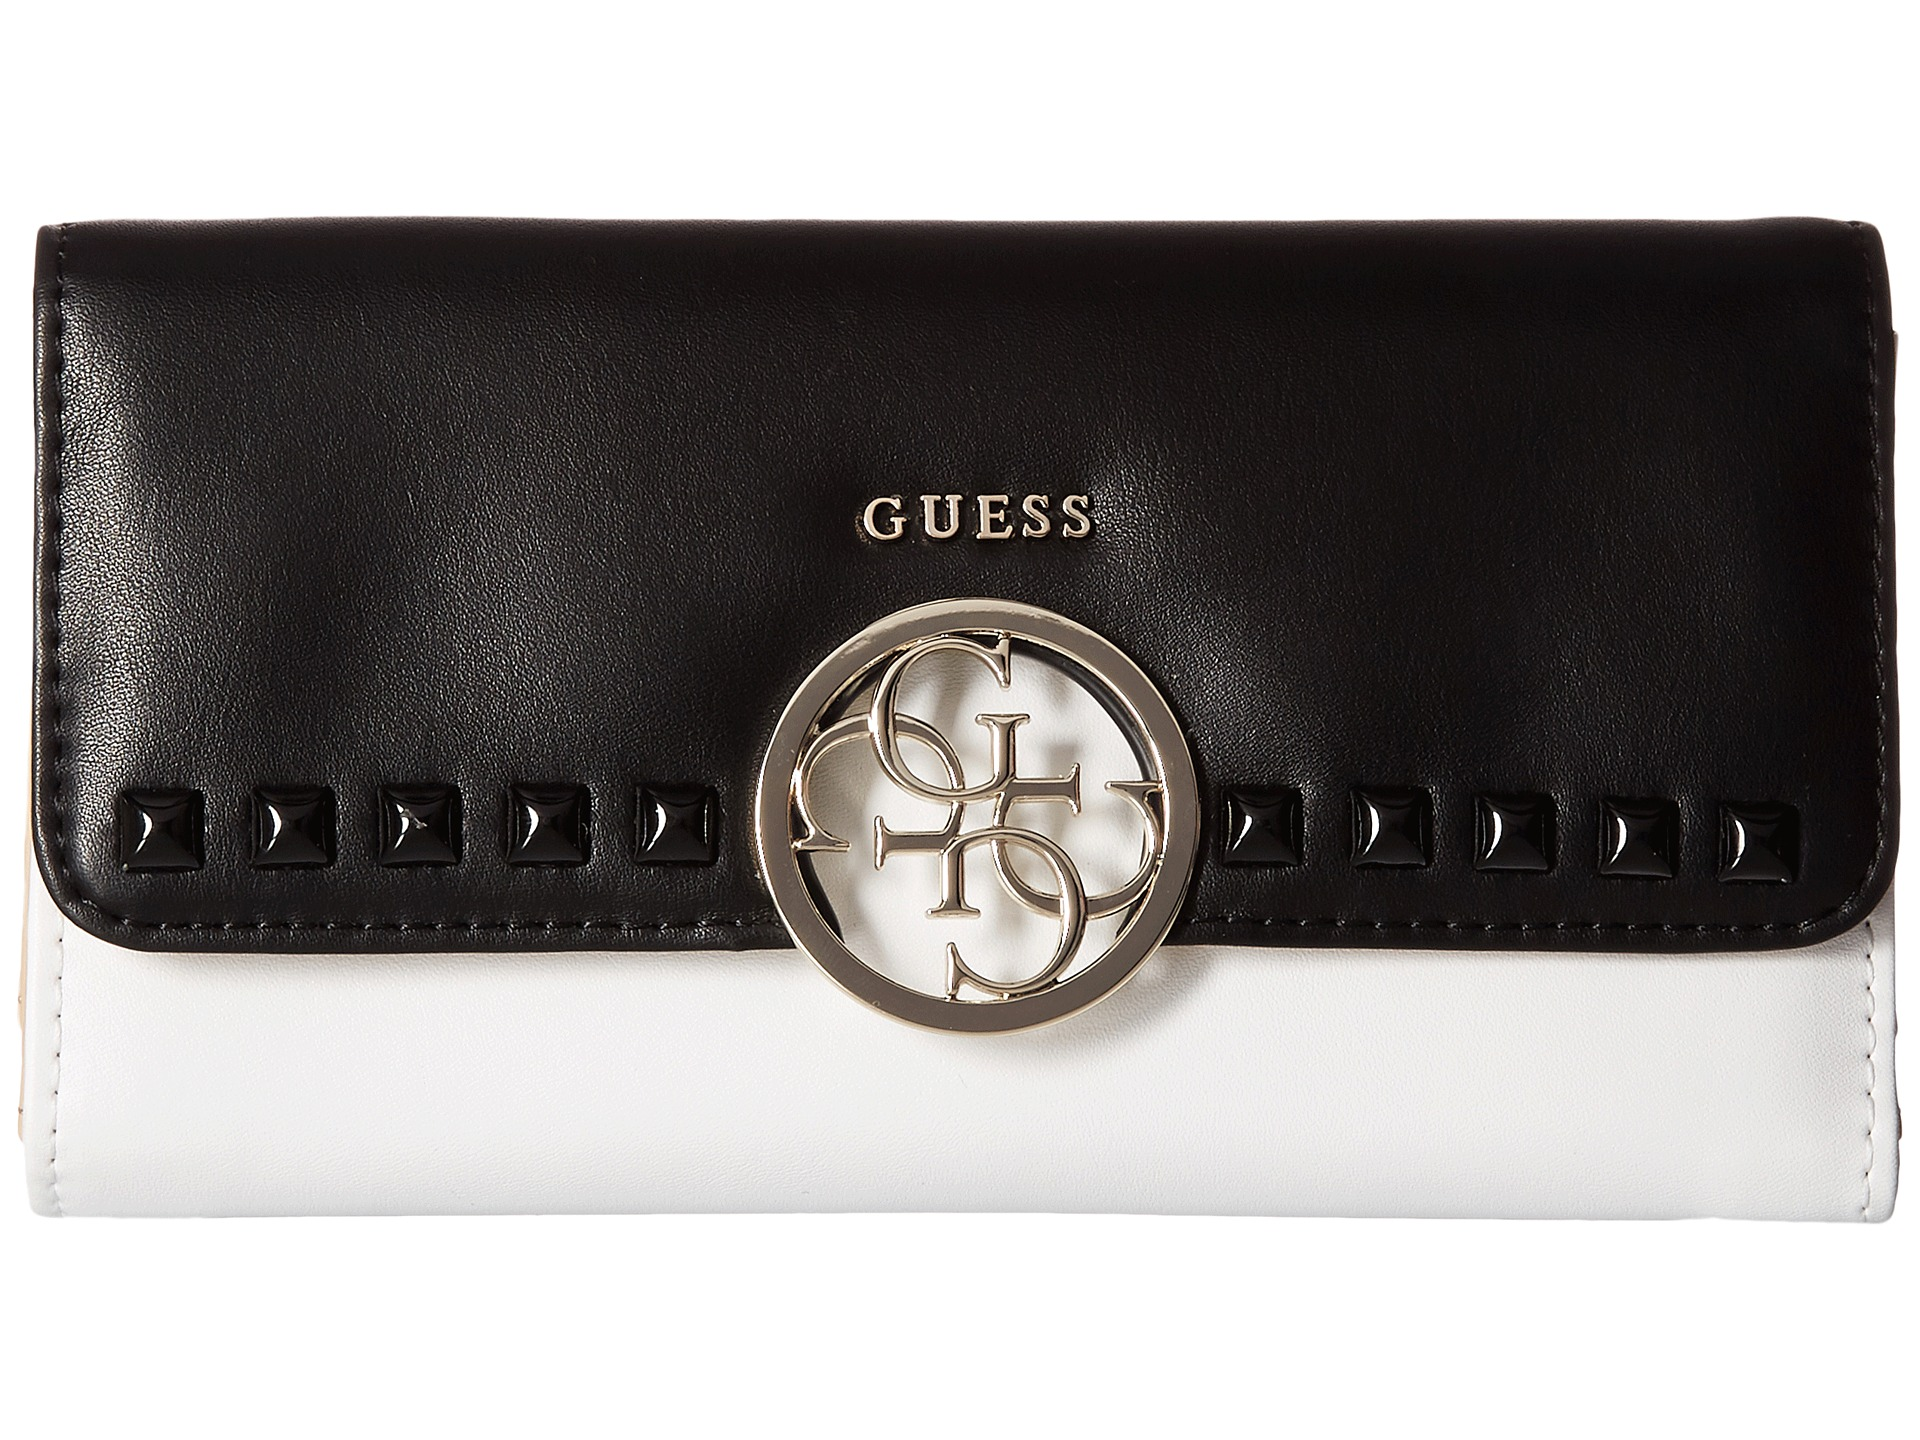 GUESS Devyn SLG Multi Clutch at 6pm.com